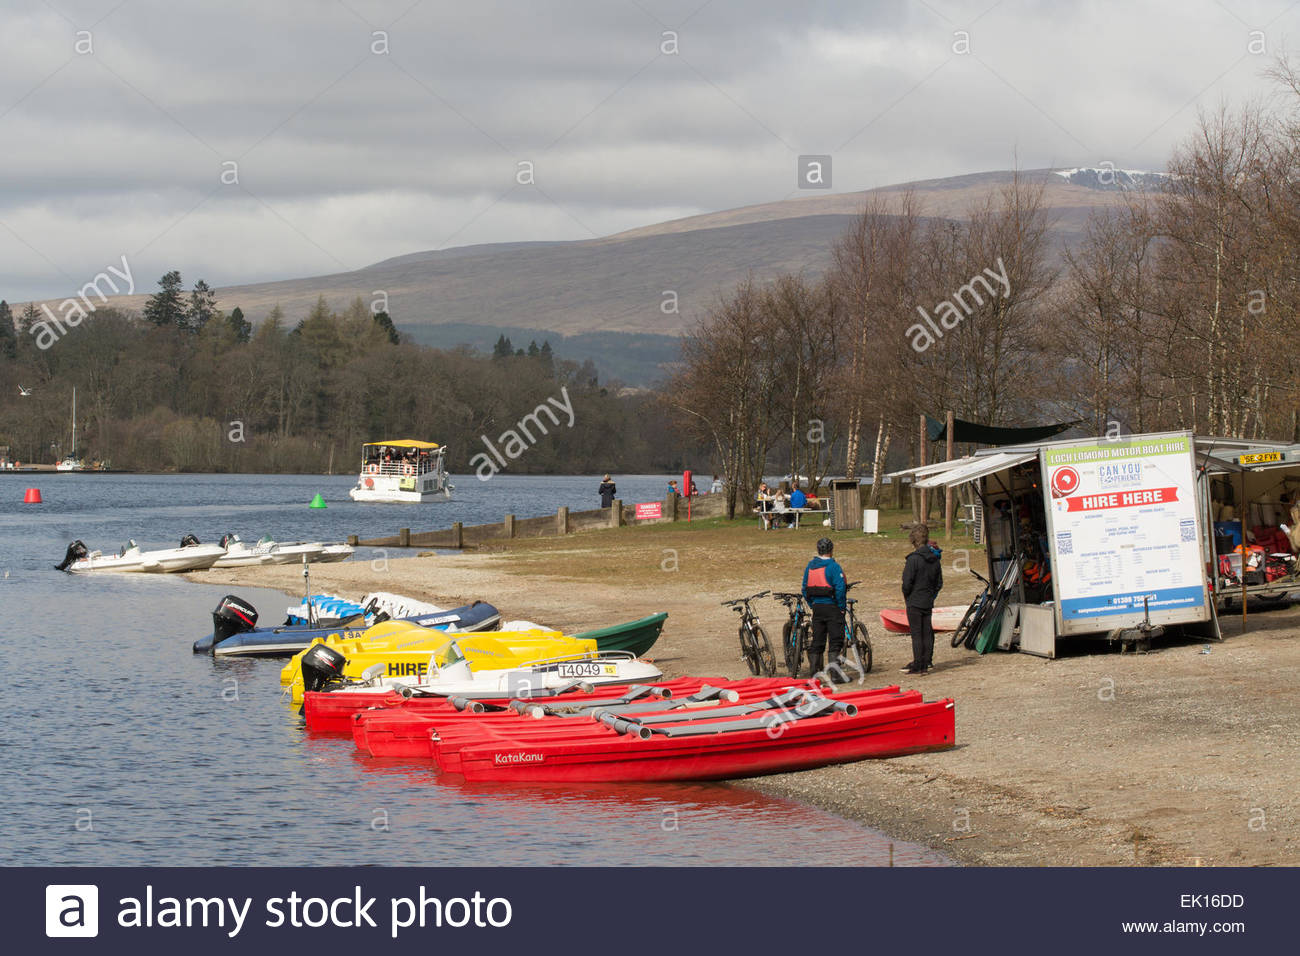 sport and leisure activities available at Loch Lomond Shores, Balloch, Scotland, UK - Stock Image